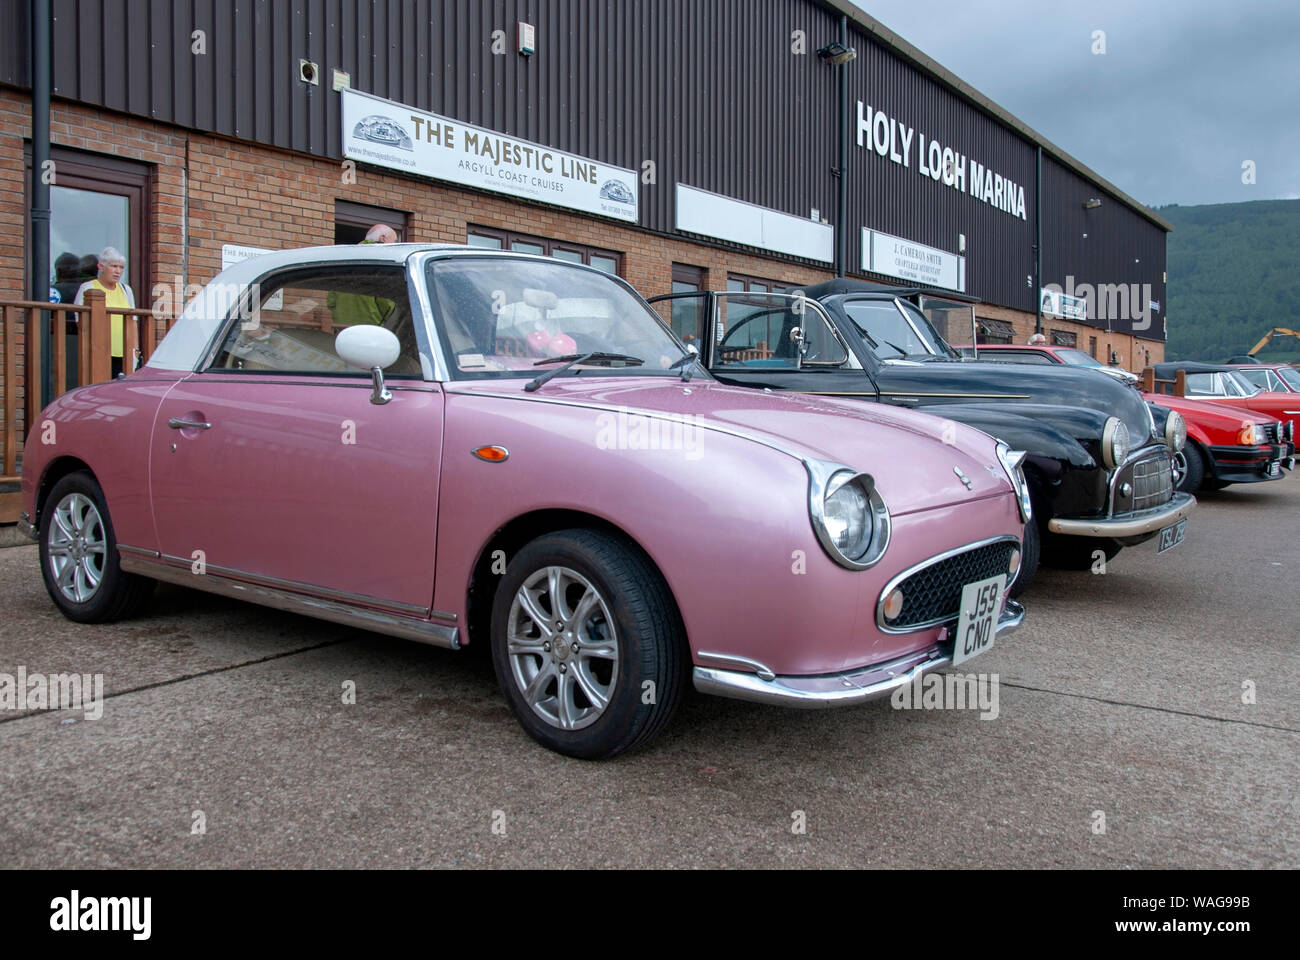 1991 Pink Retro Style Nissan Figaro 2 Door Fixed Profile Convertible White Roof Front Drivers Side Offside View Japanese City Car Parked Holy Loch Mar Stock Photo Alamy